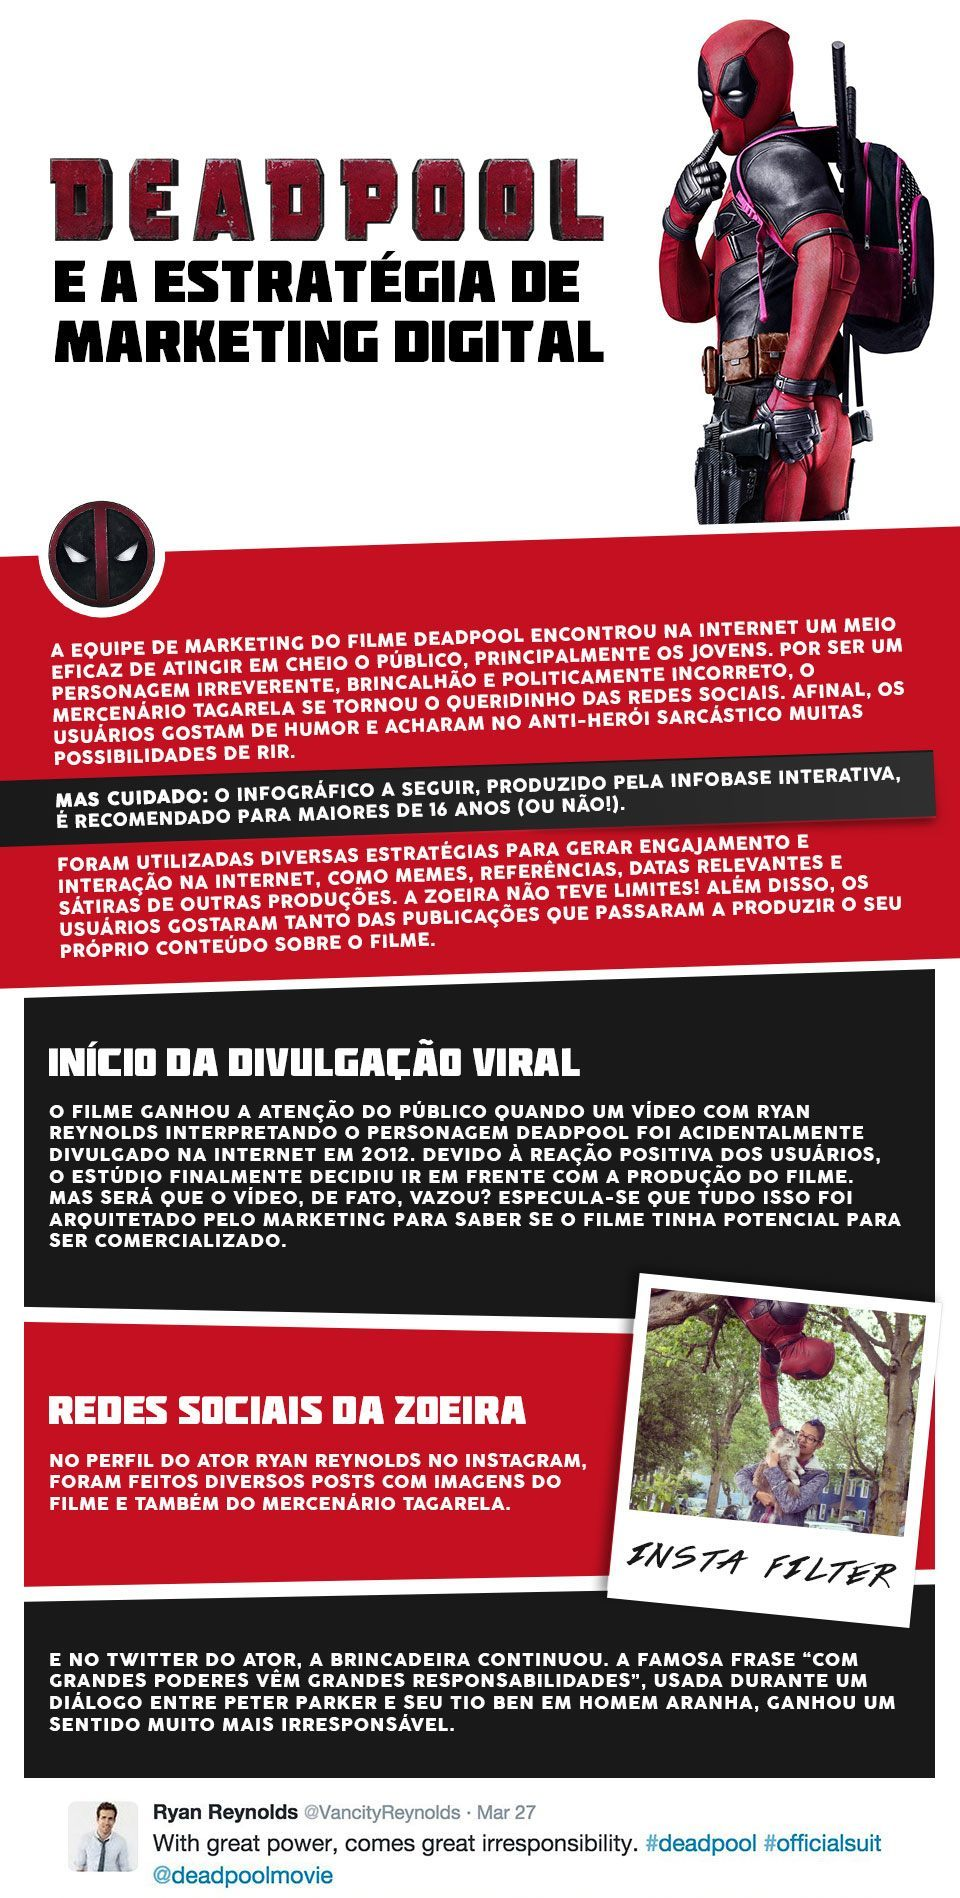 Deadpool e a estratégia de marketing digital